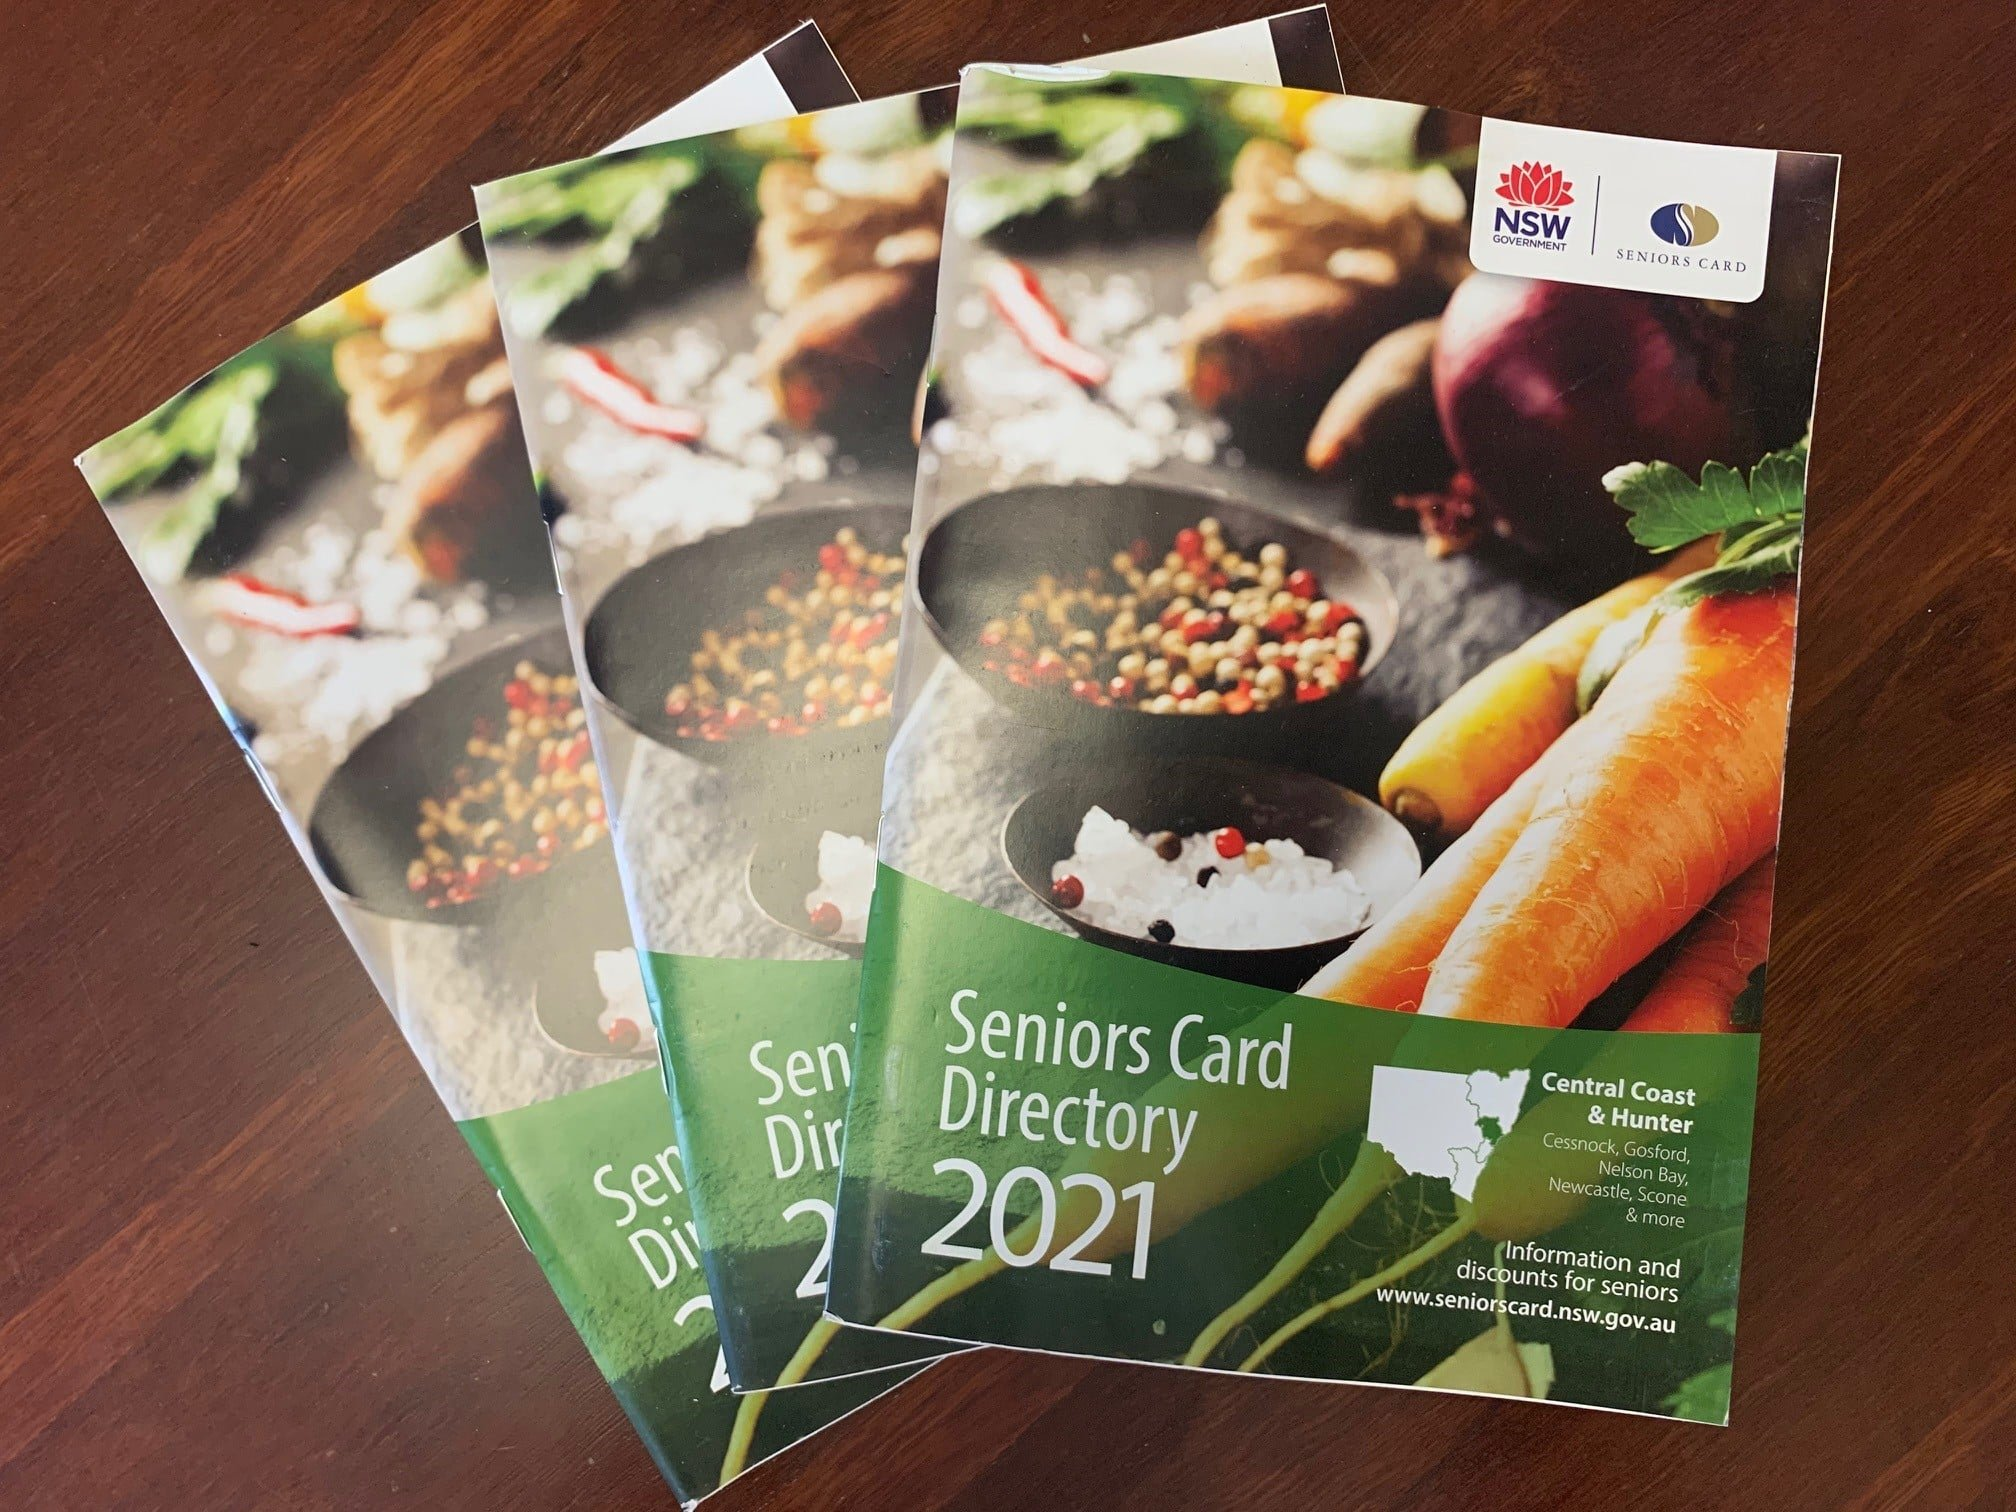 I still have plenty of free copies of the 2021 Seniors Card Directory and the 2021 Legal Aid Diary for Seniors available in my office. Both are really handy publications.